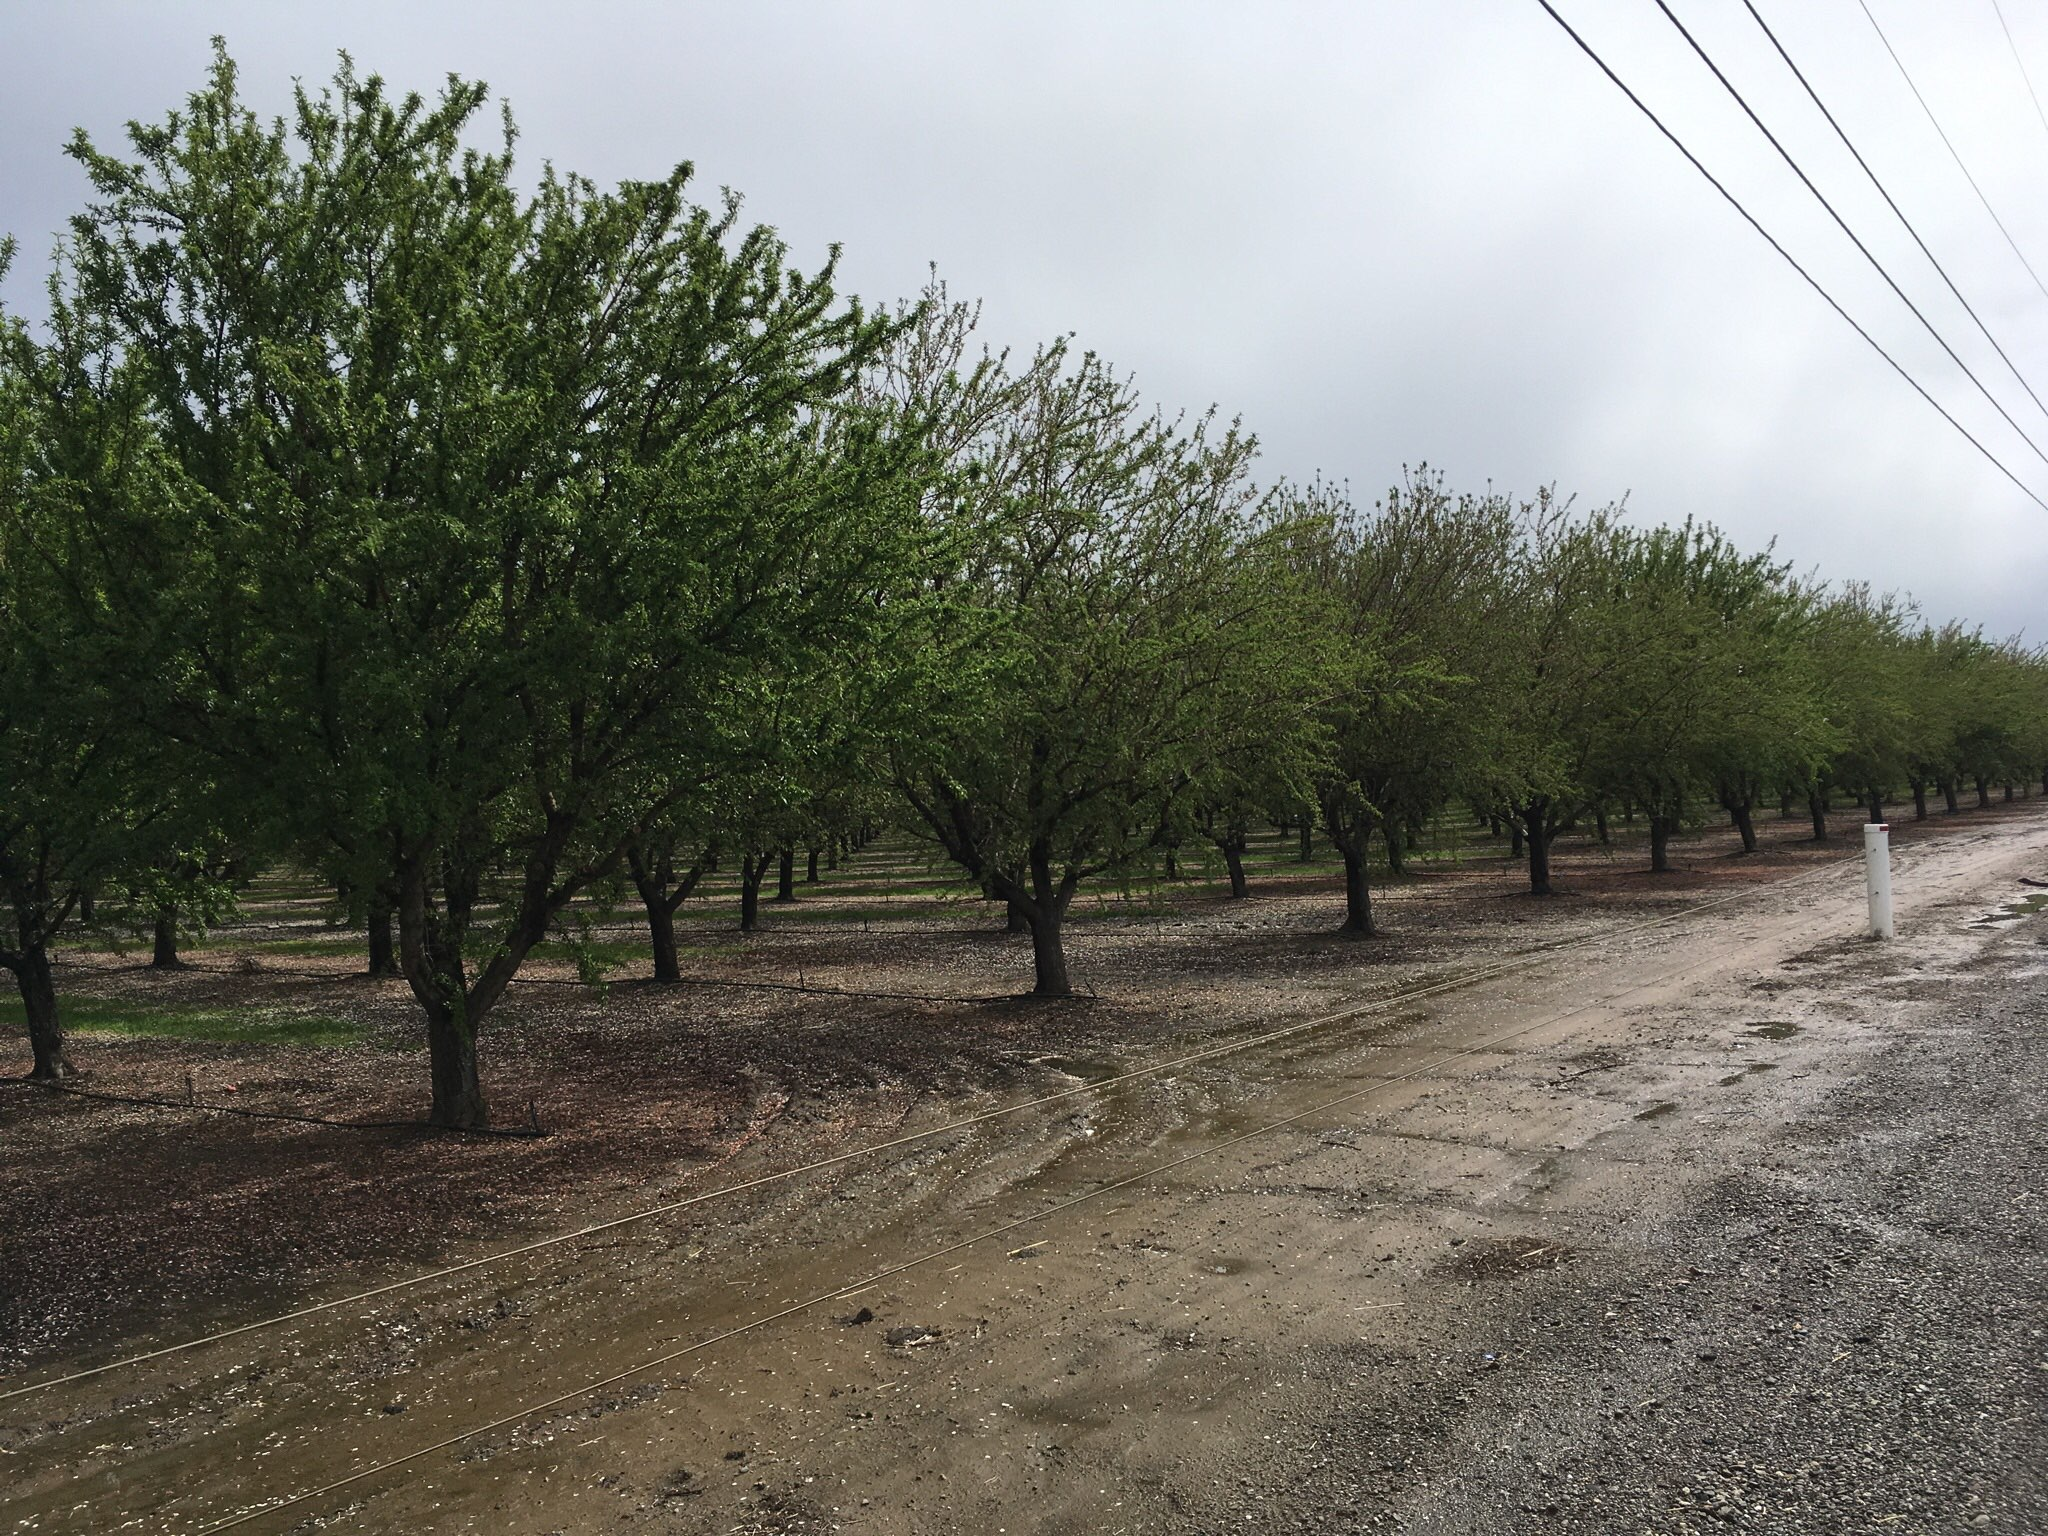 Almond Acres in California is increasing again